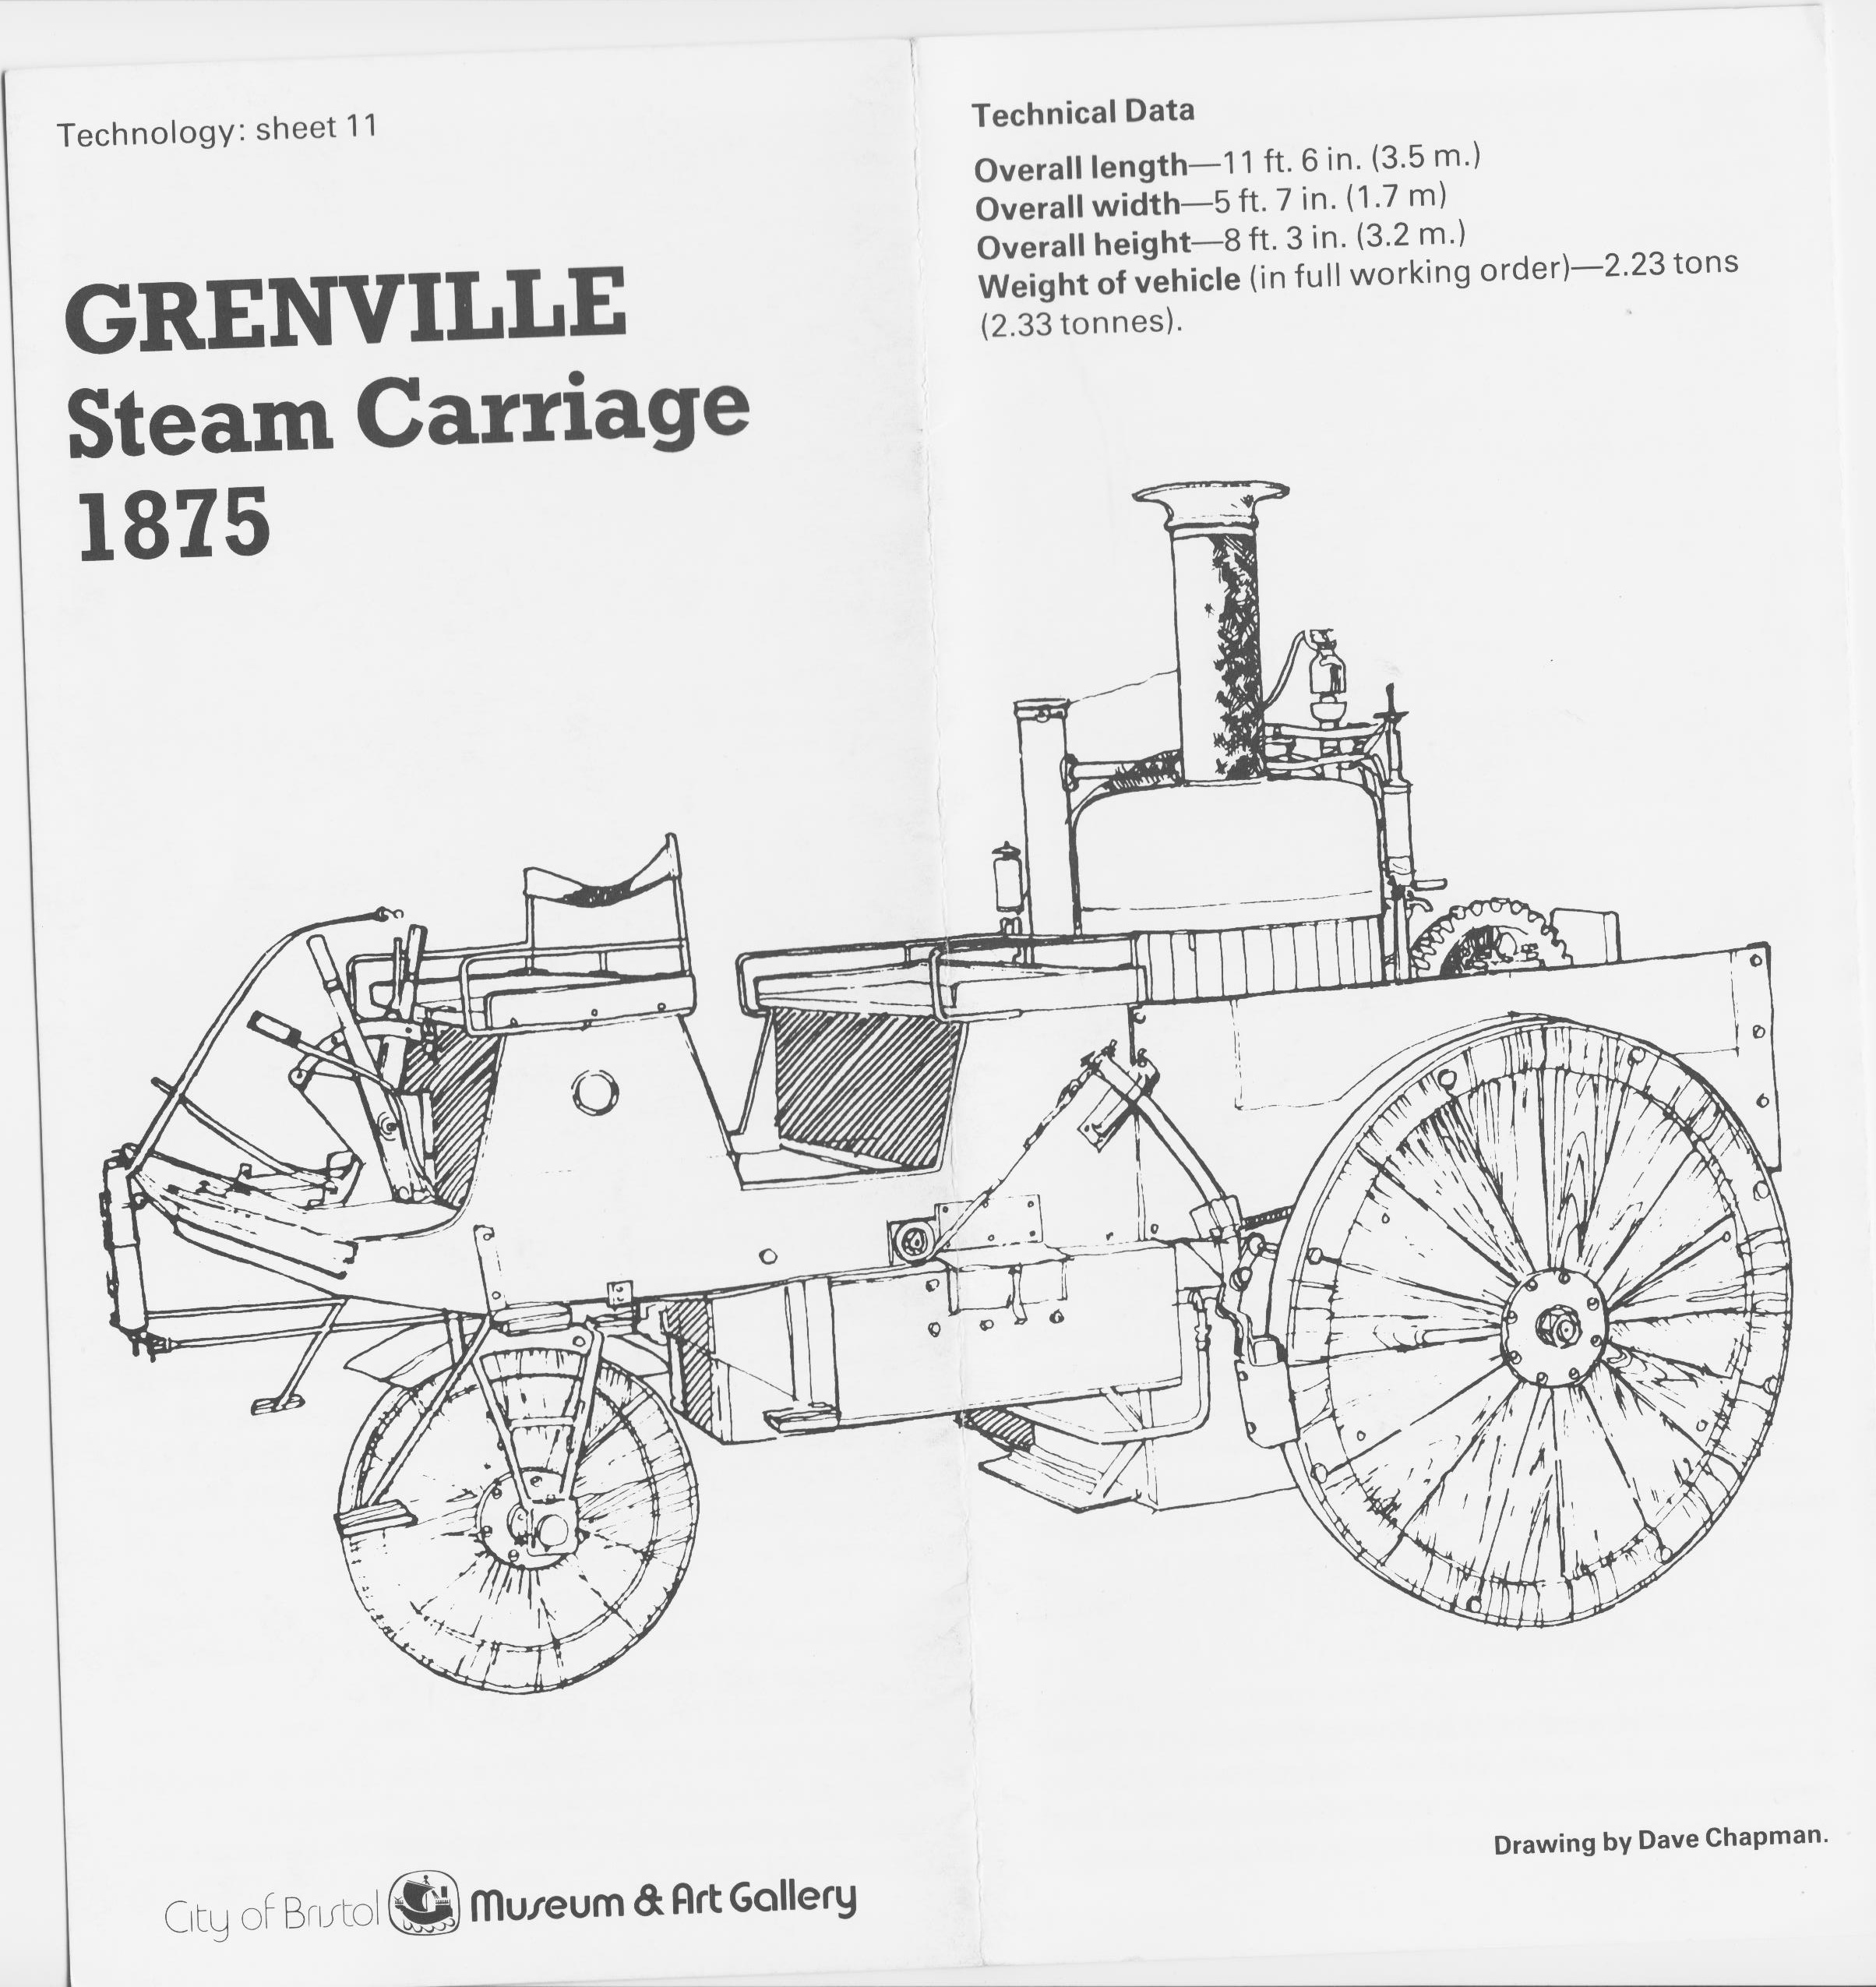 Grenville Steam Carriage